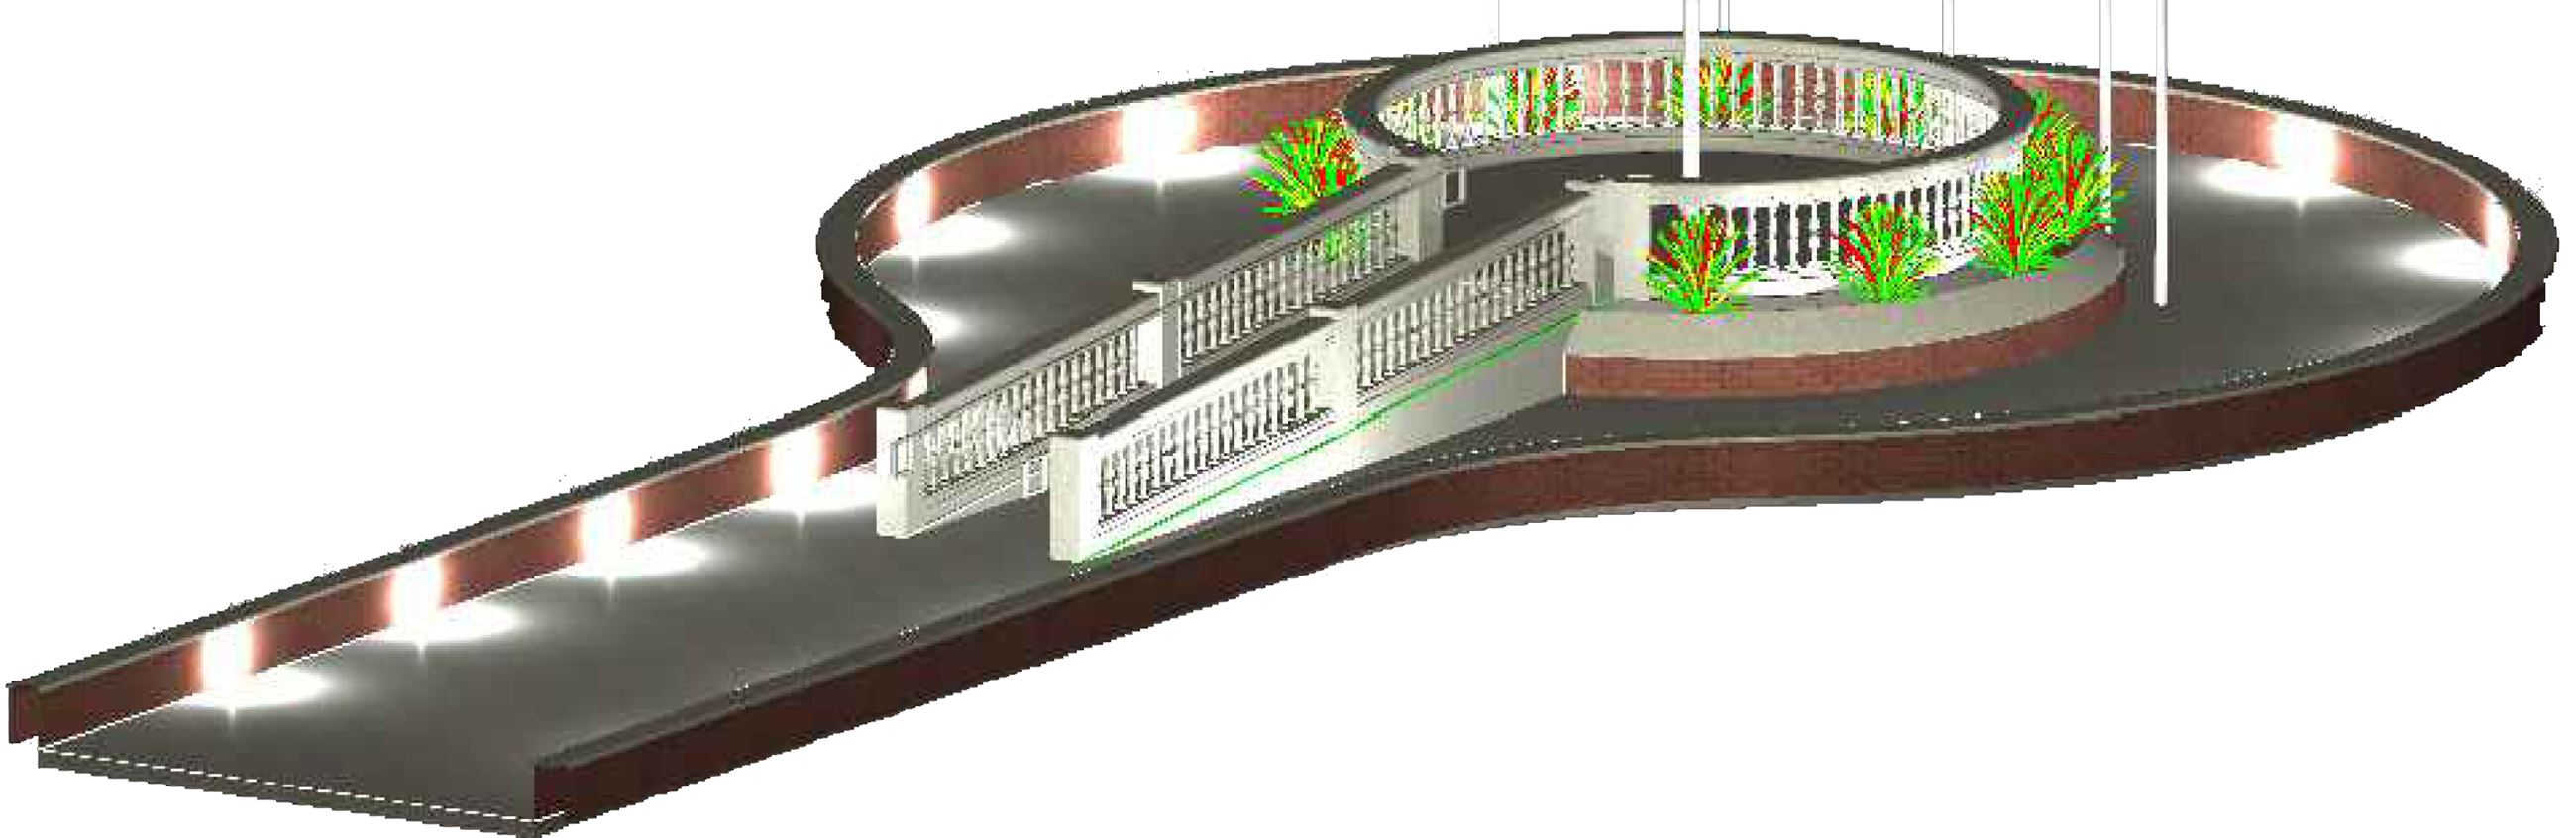 Veterans Memorial rendering